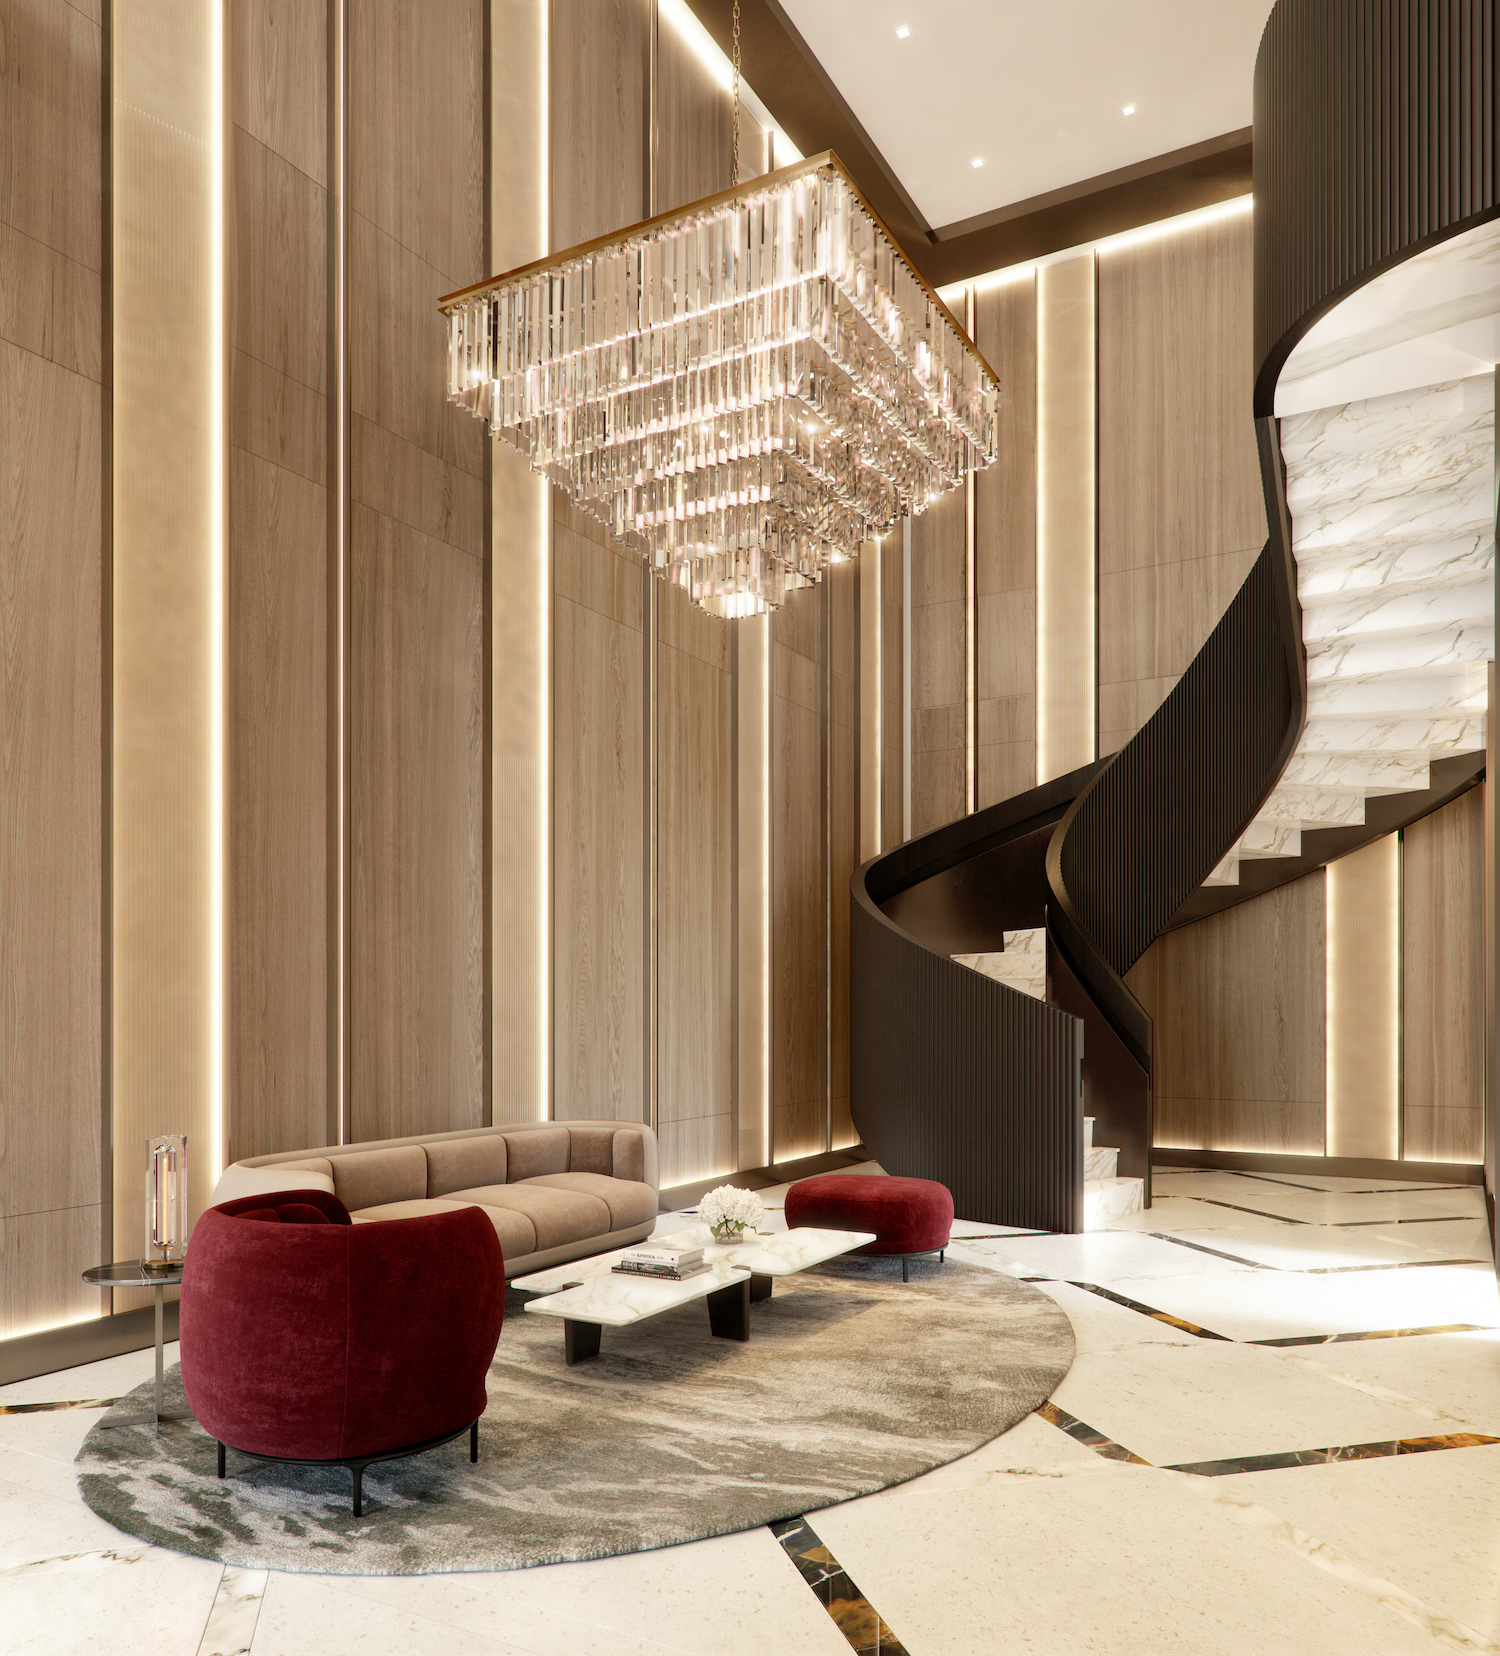 Era Amenities - Lobby Spiral Staircase. Rendering by V1